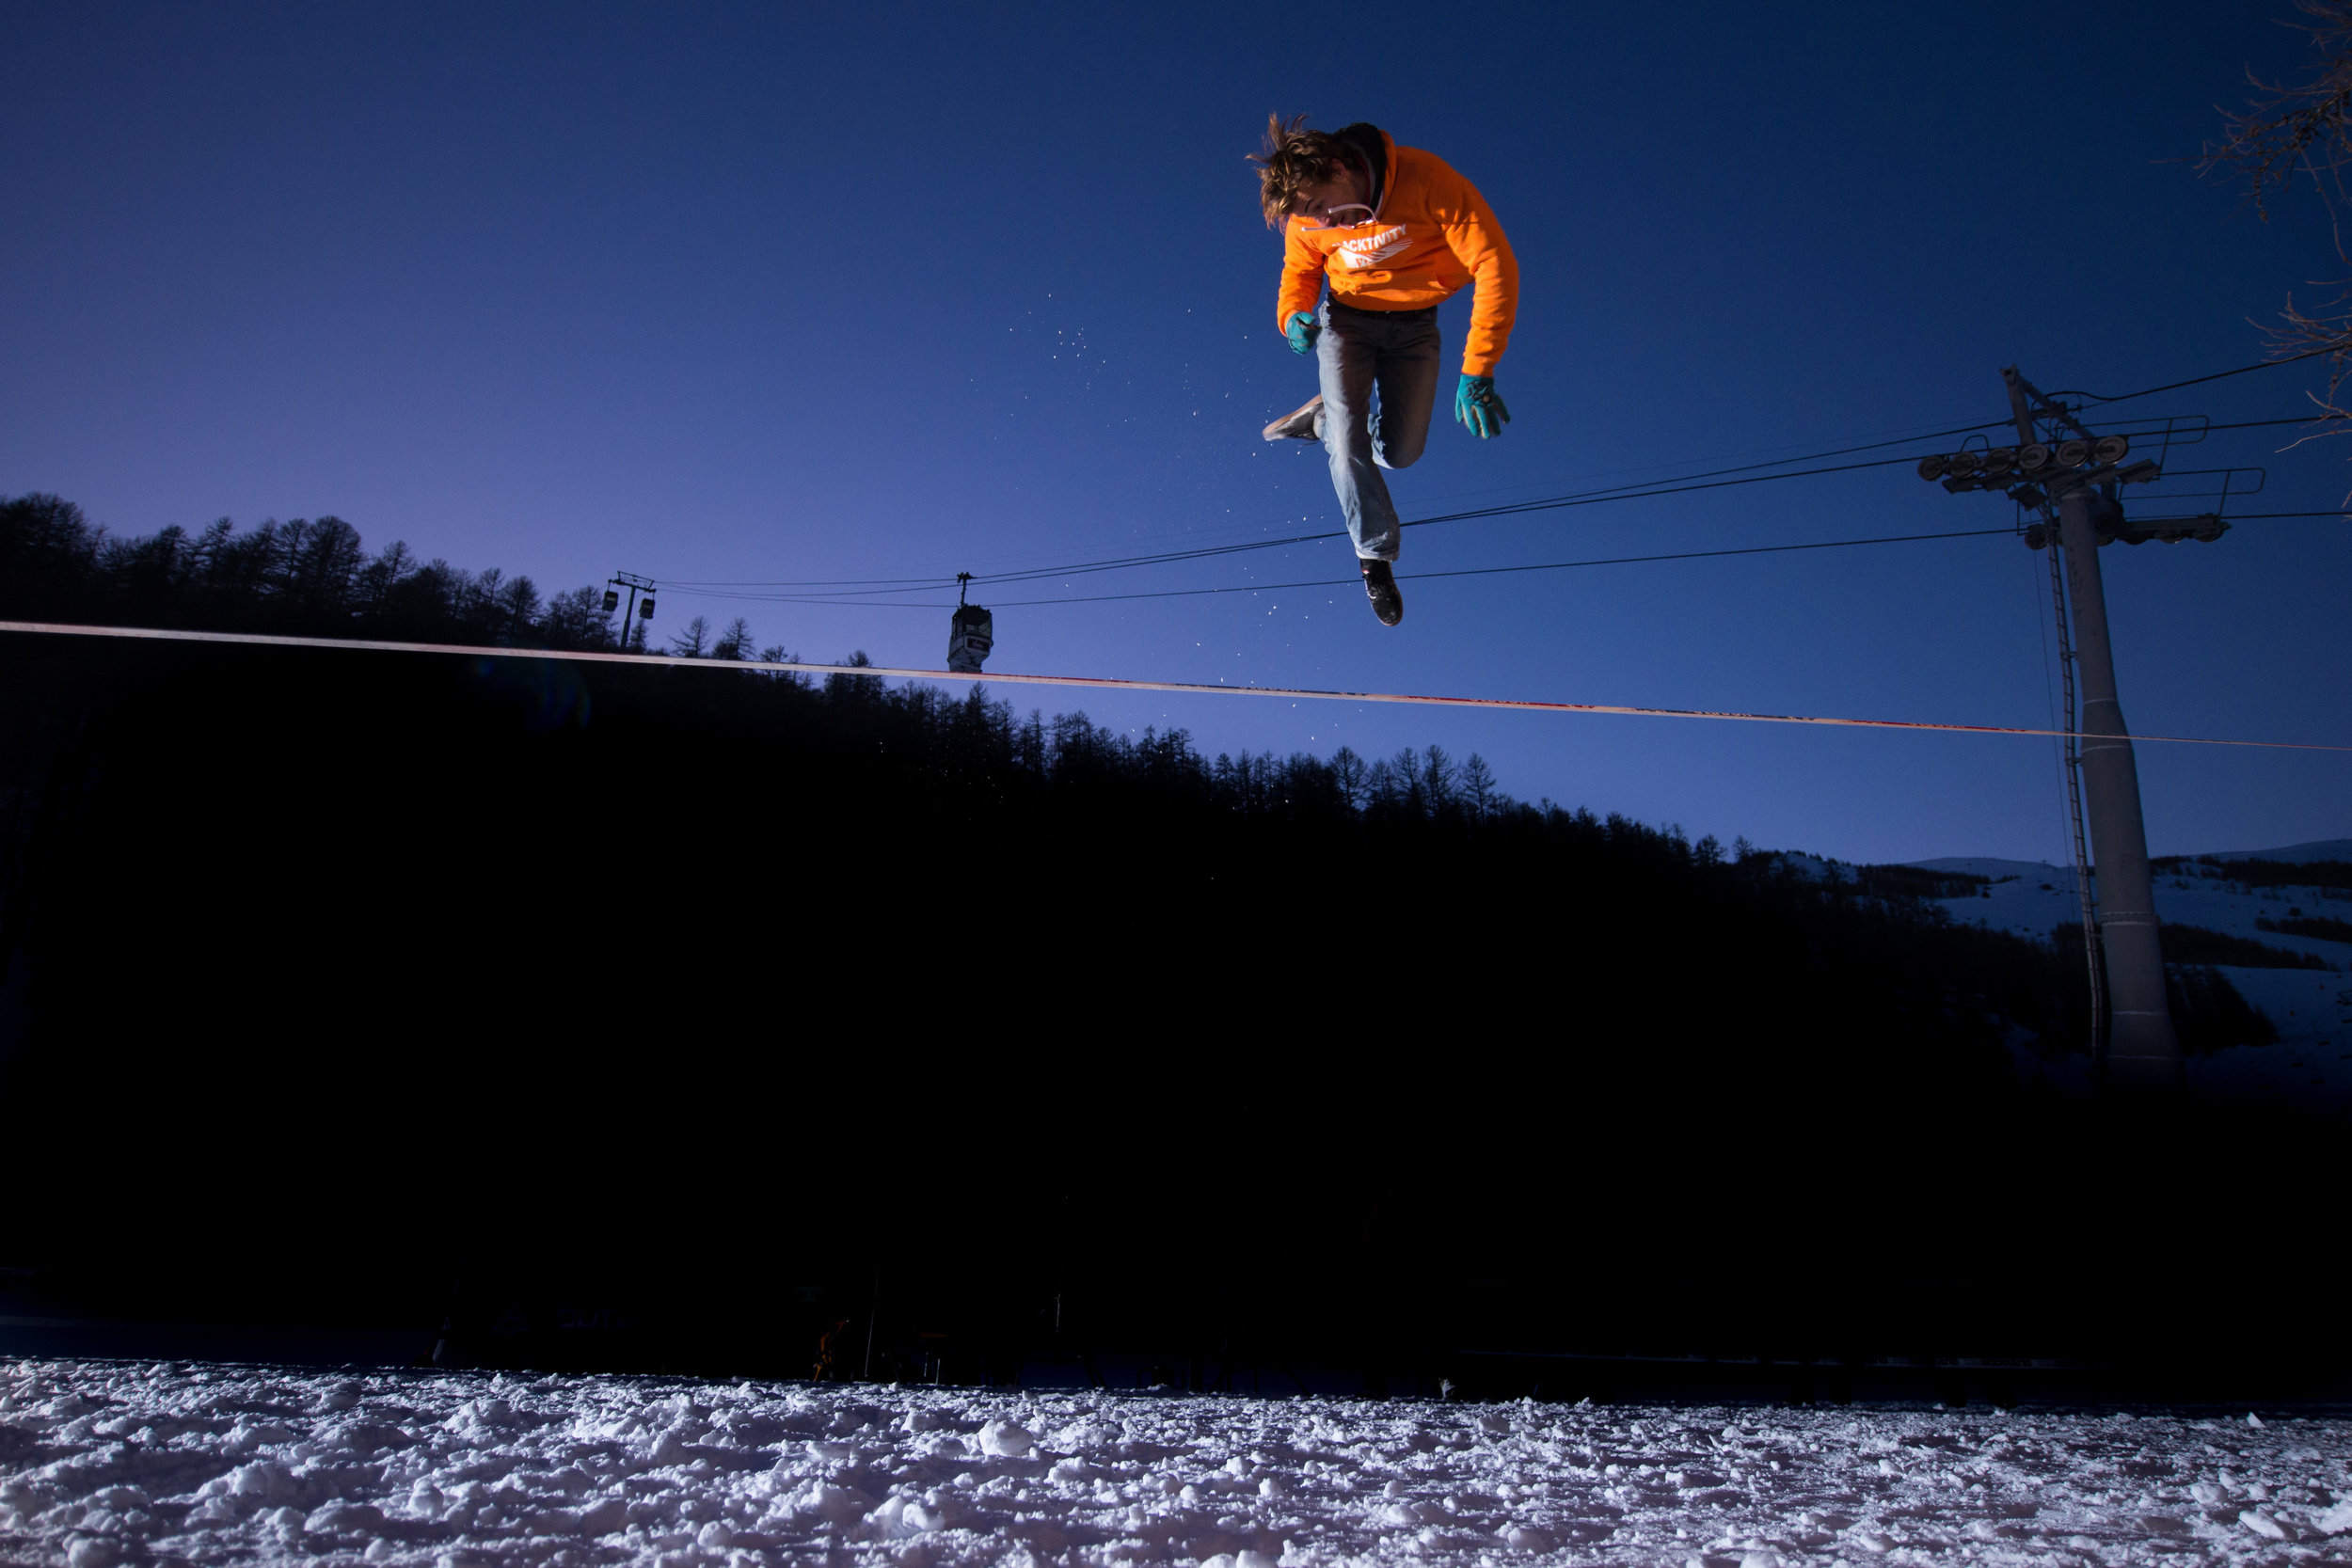 france outdoormix hiver nuit competition vars highline trickline show funambule circus performance spectacle ecole suisse Slackline Lyell Grunberg  (1).jpg